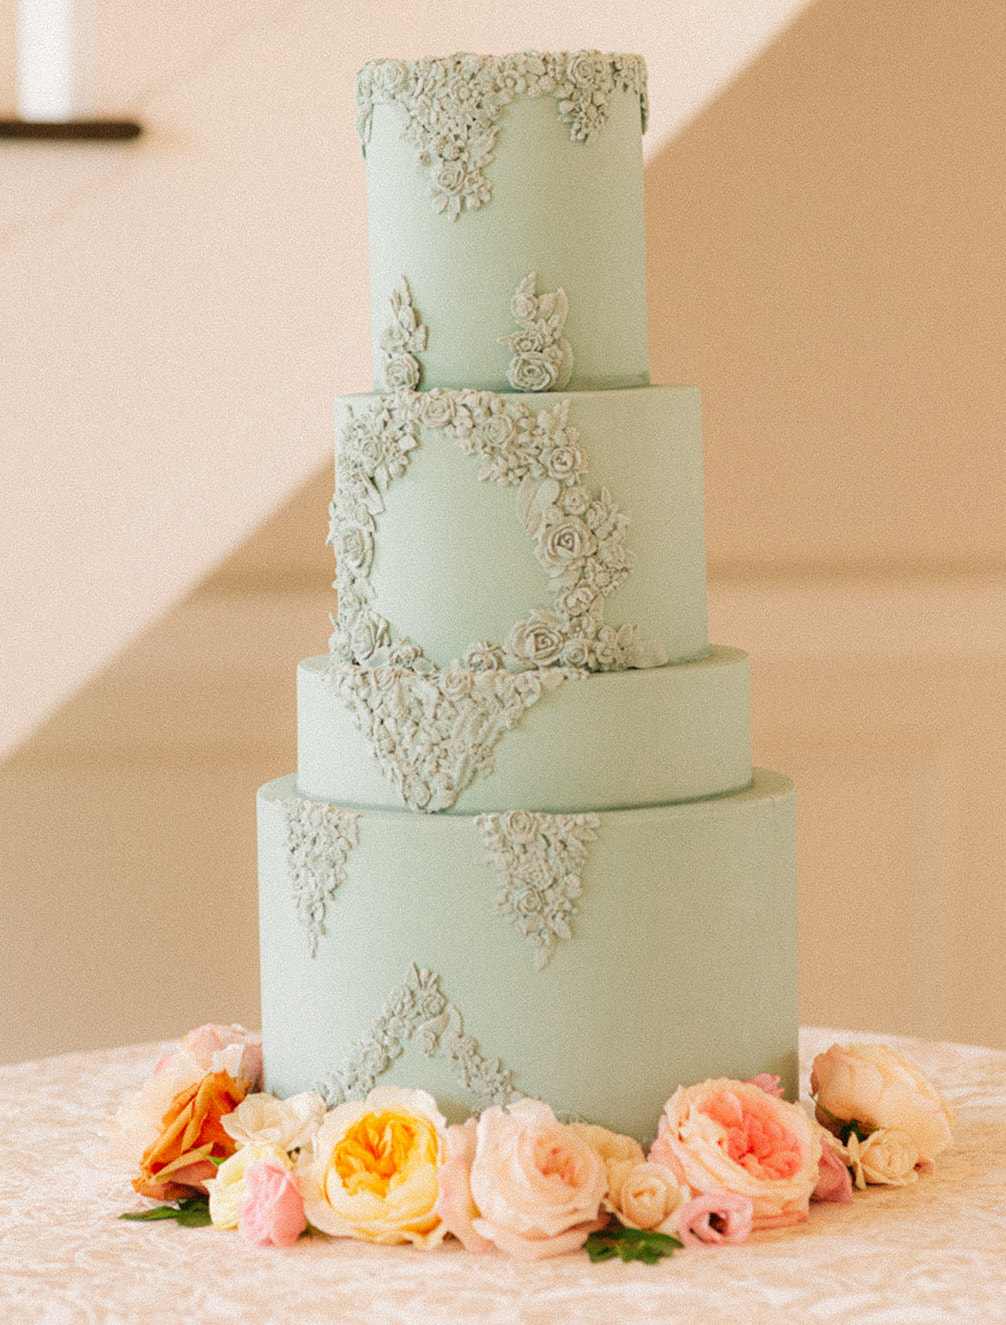 4-tiered wedding cake with sage green frosting with artfully curated flowers at the base.